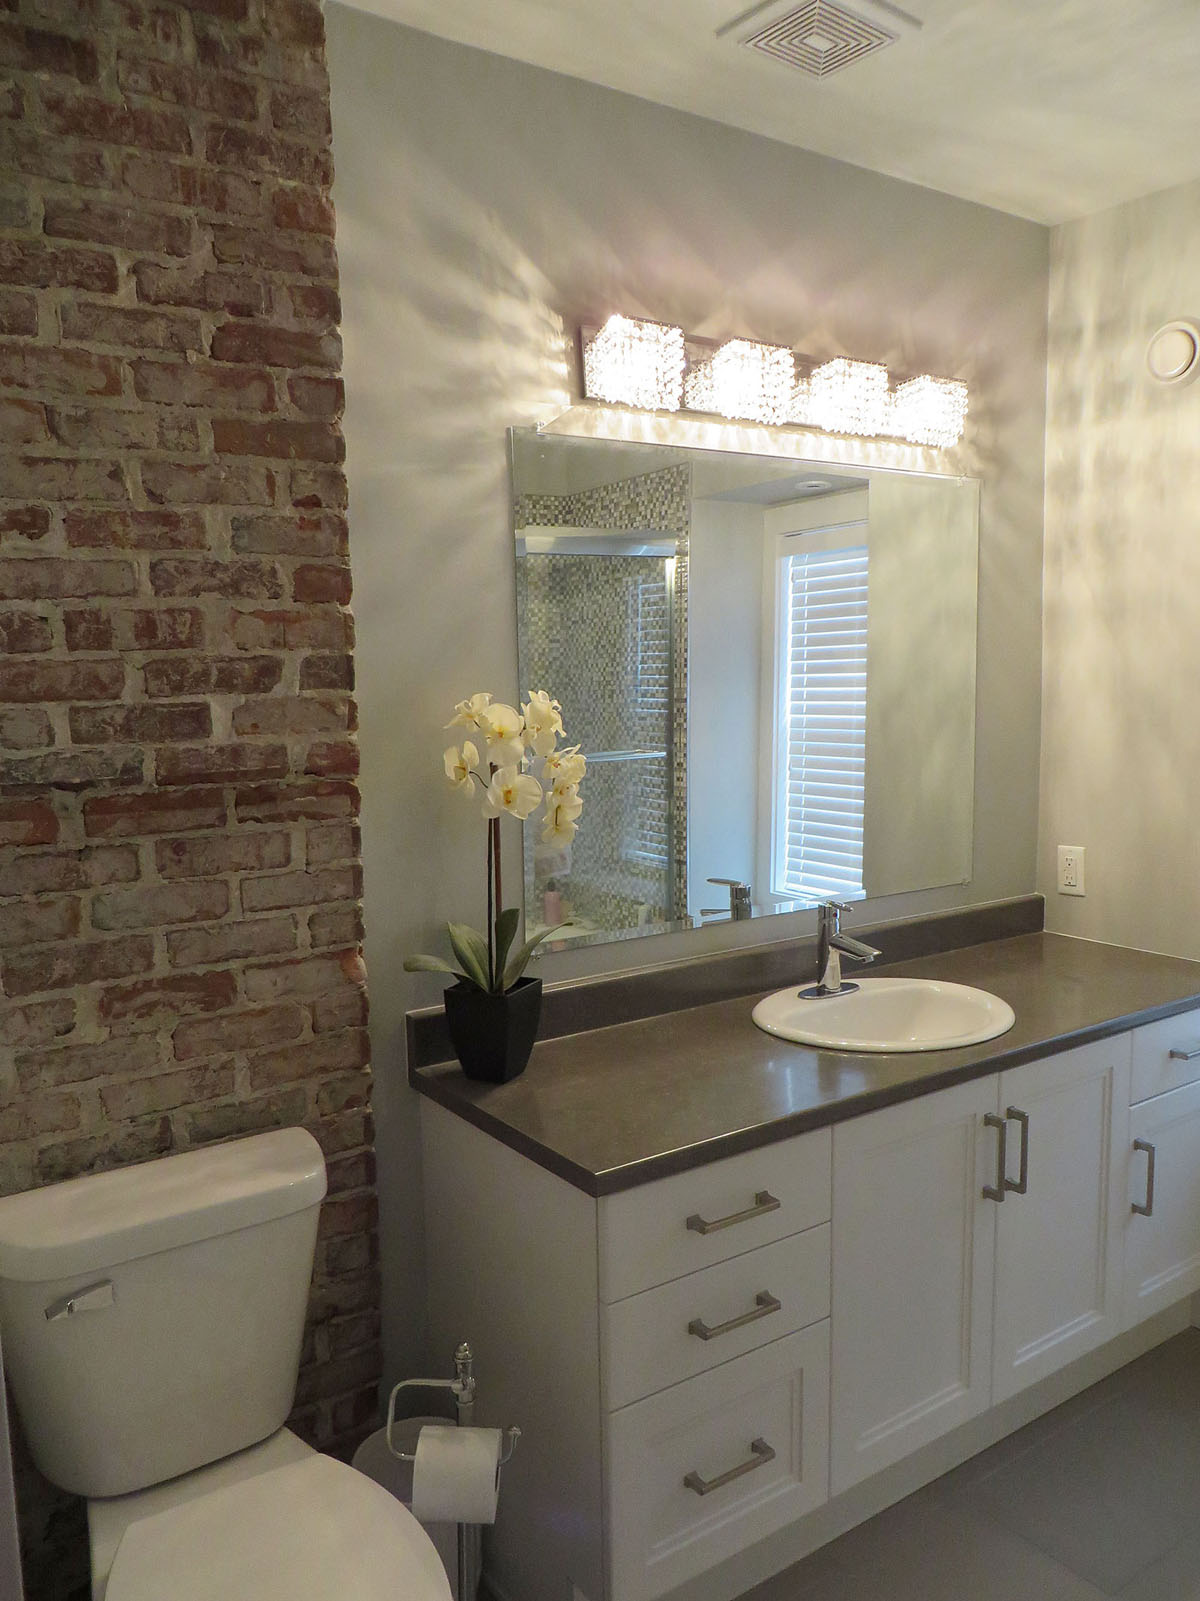 Safe, elegant bathroom lighting, GFI outlets, and fan.